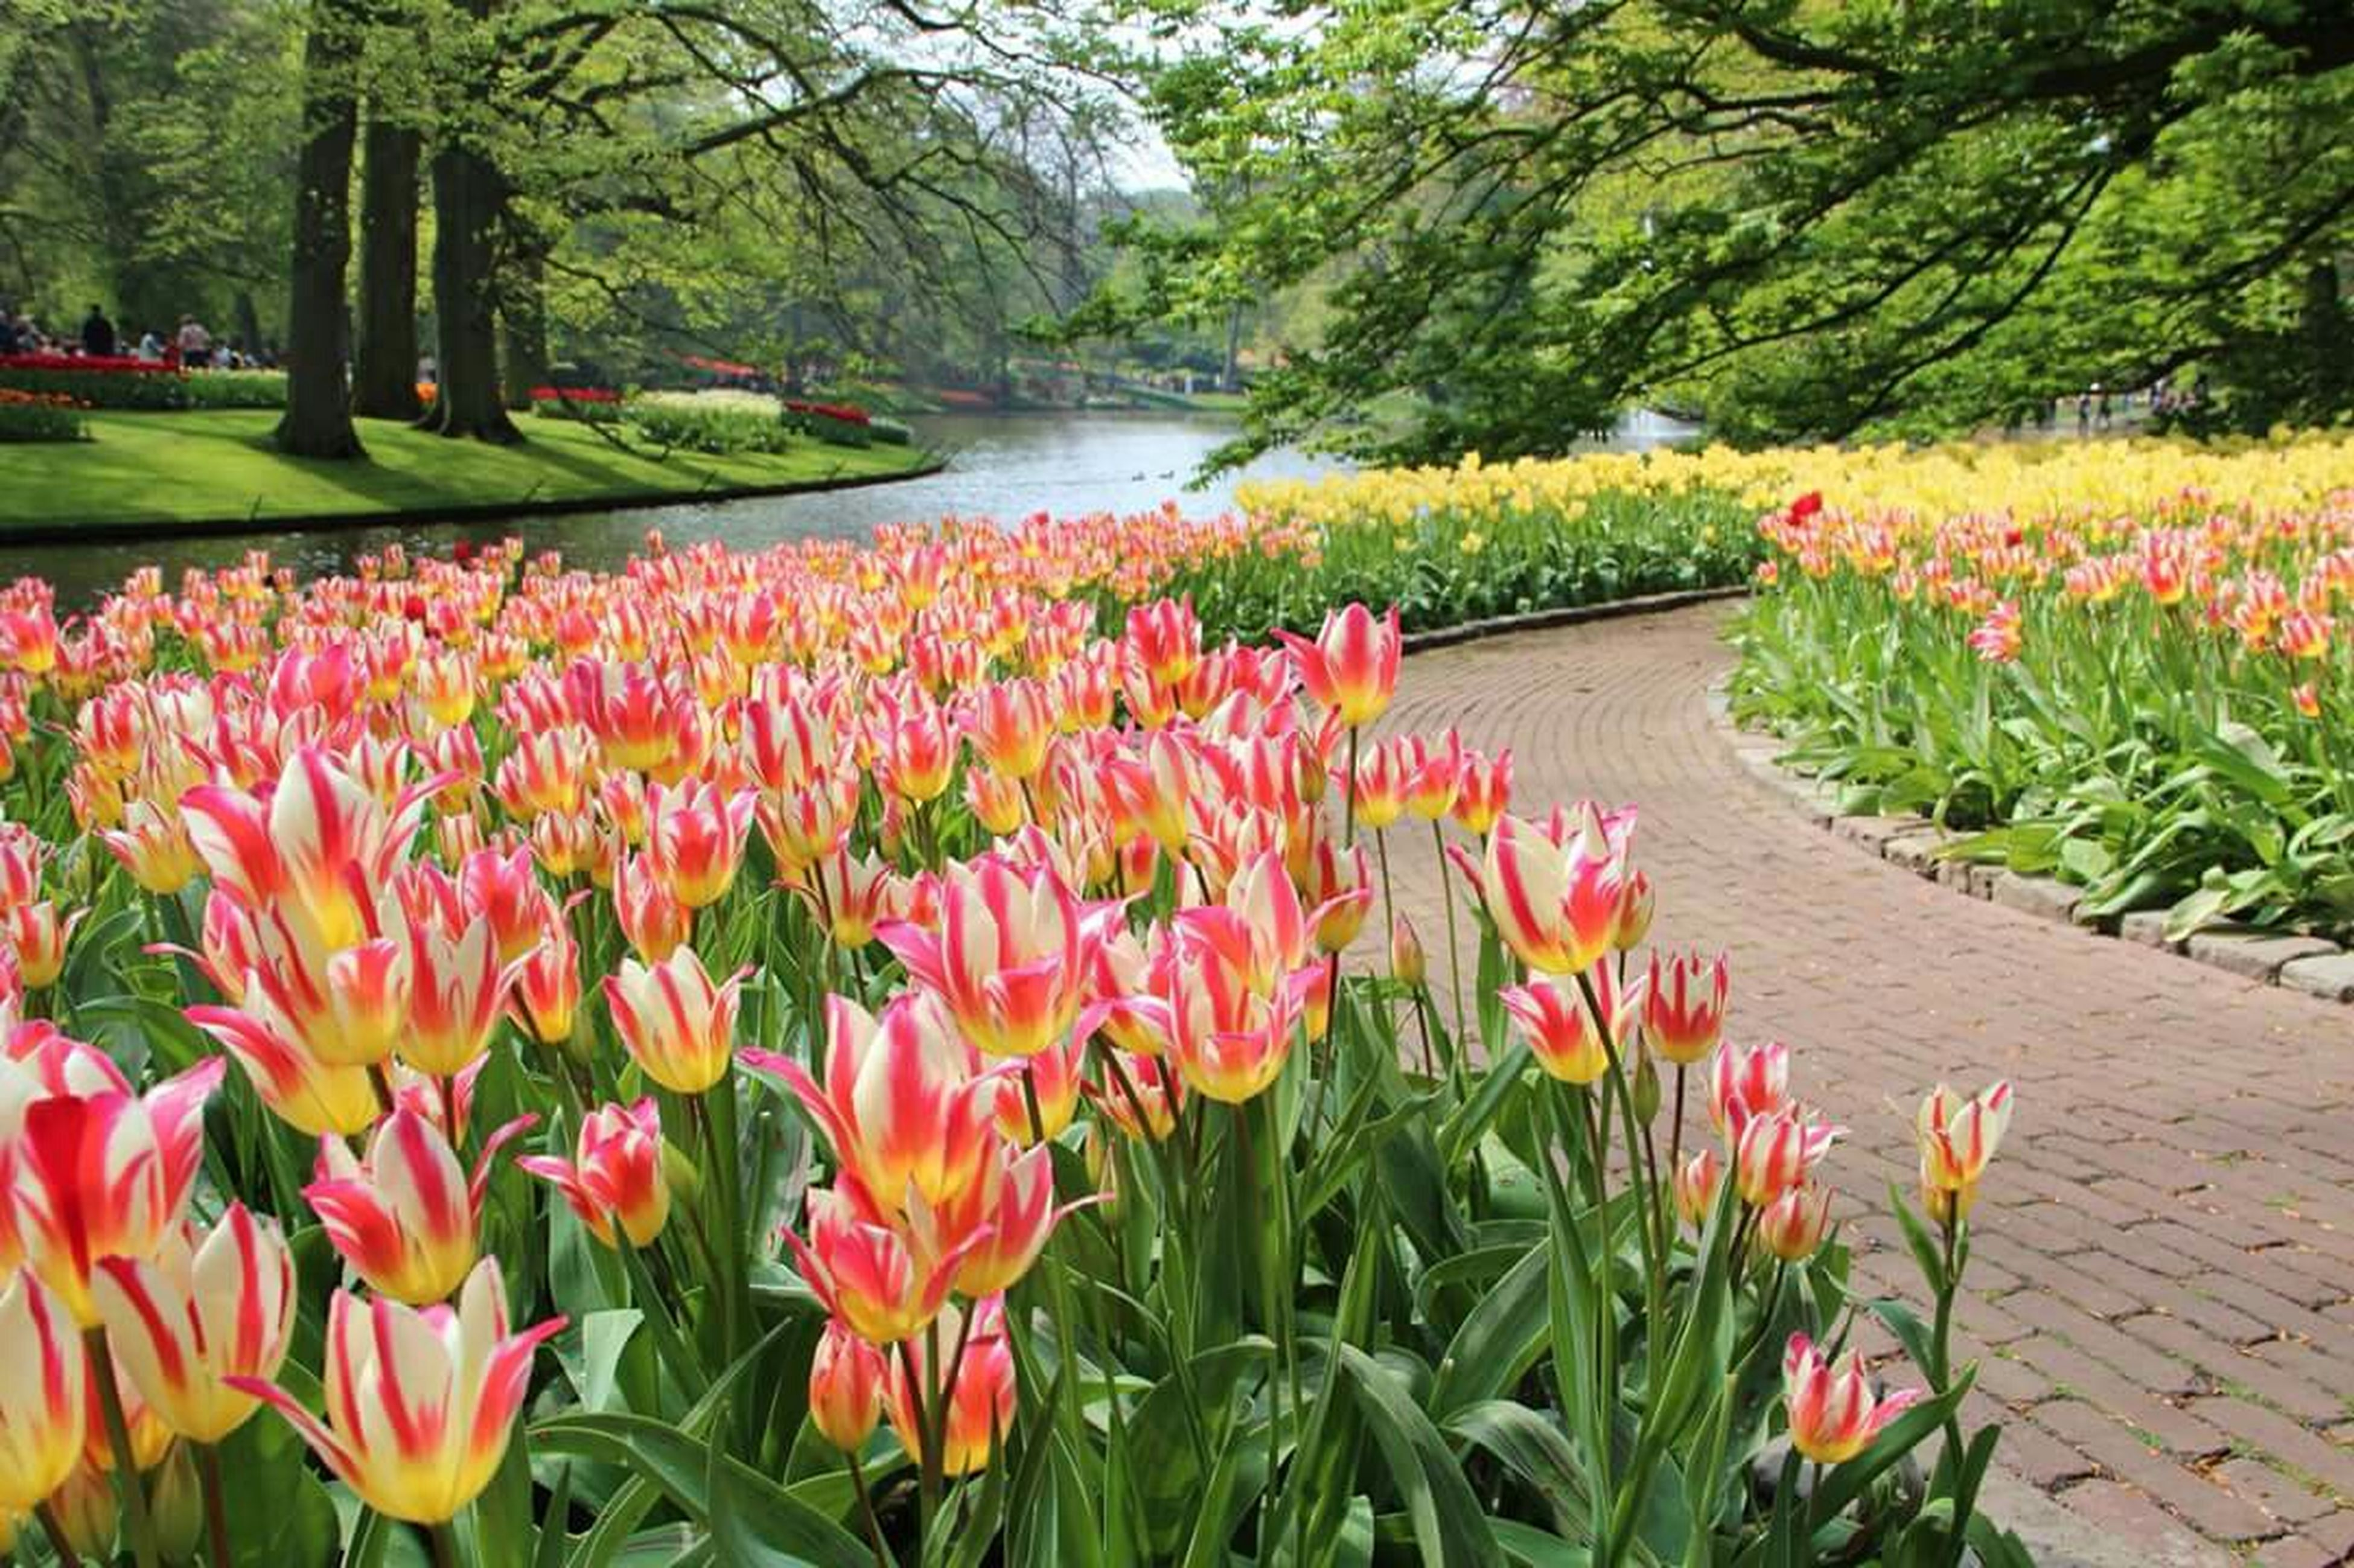 flower, freshness, growth, beauty in nature, fragility, petal, tulip, nature, multi colored, red, plant, blooming, flowerbed, abundance, flower head, in bloom, park - man made space, blossom, colorful, green color